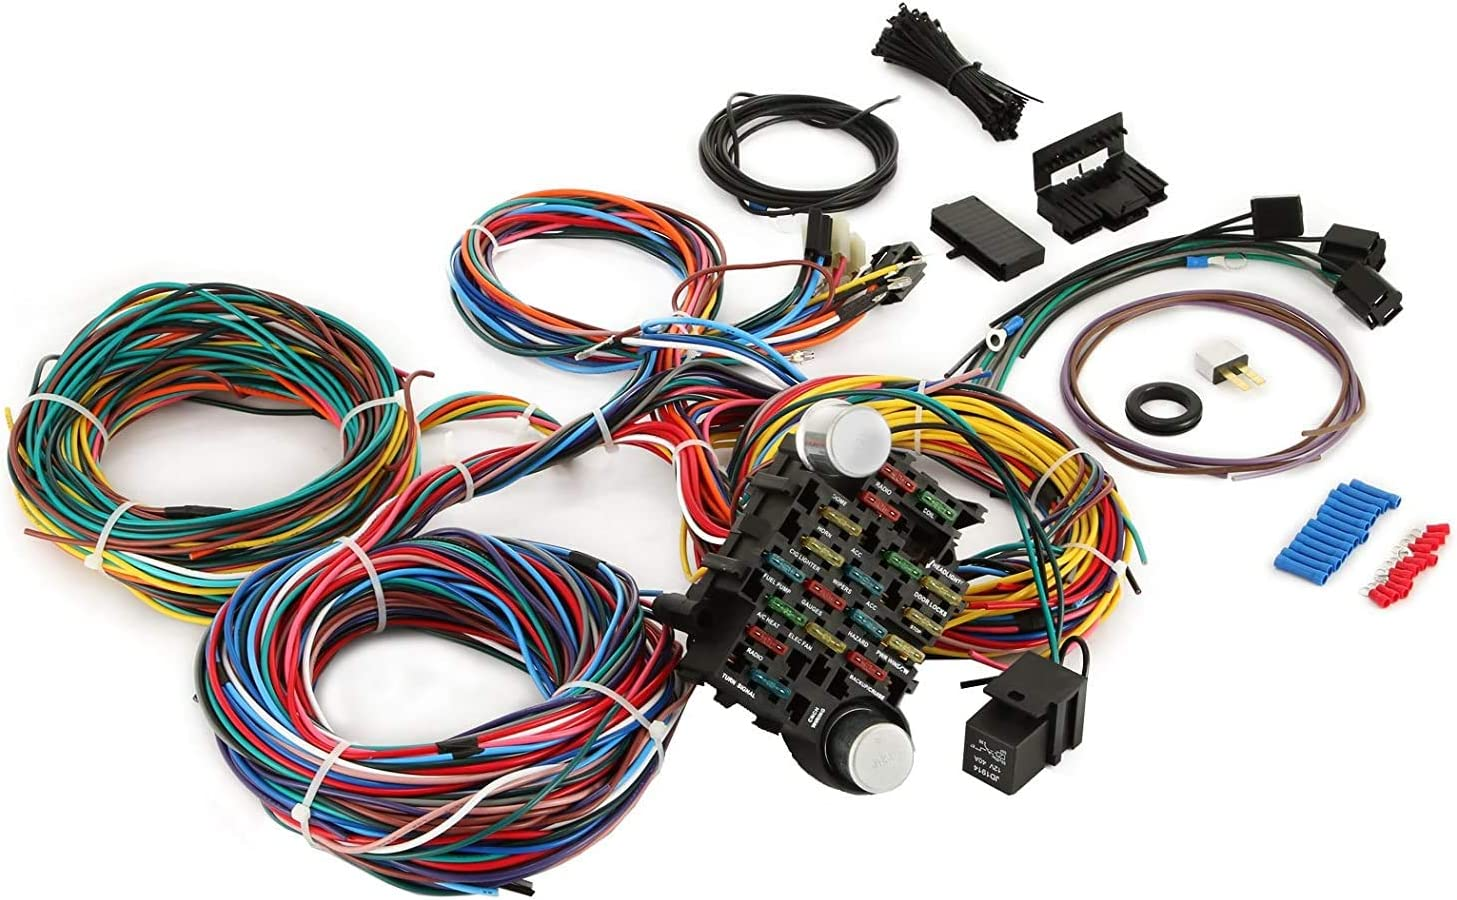 [WQZT_9871]  Amazon.com: VEVOR 12 Circuit Wiring Harness Kit Long Wires Wiring Harness  Universal Wiring Harness for Hot Rods, Race Cars: Automotive | Universal Wiring Harness Kit |  | Amazon.com